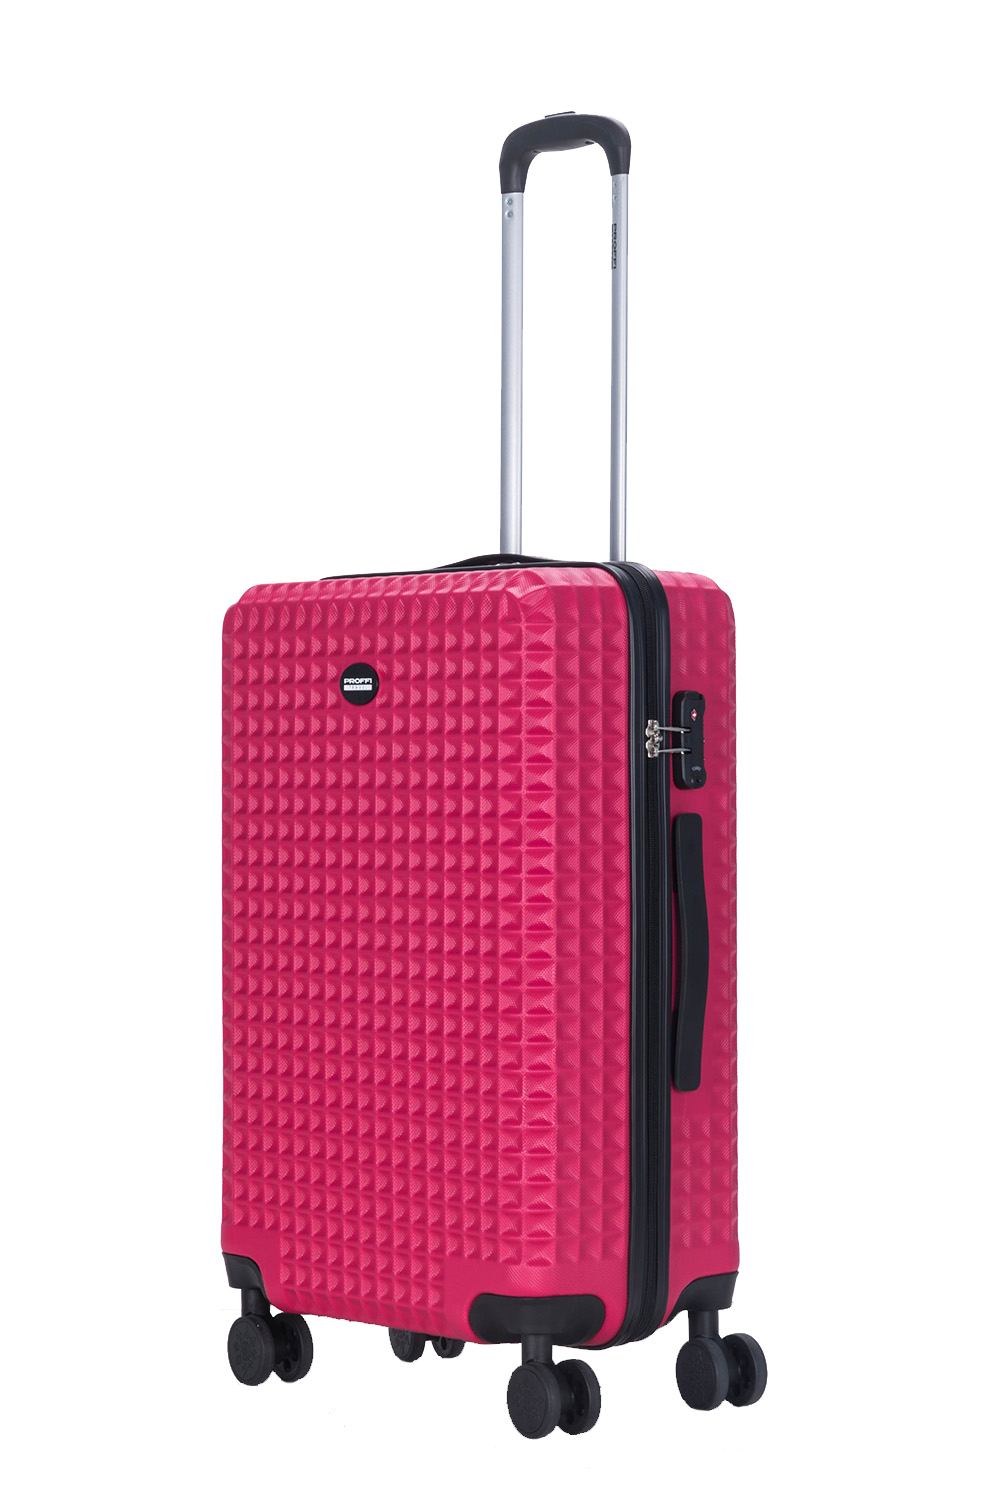 Plastic suitcase PROFFI TRAVEL Tour Quattro Smart PH9691, with built-in weighs and USB, pink, S portable digital usb microscope in built white light 8pcs led magnifier